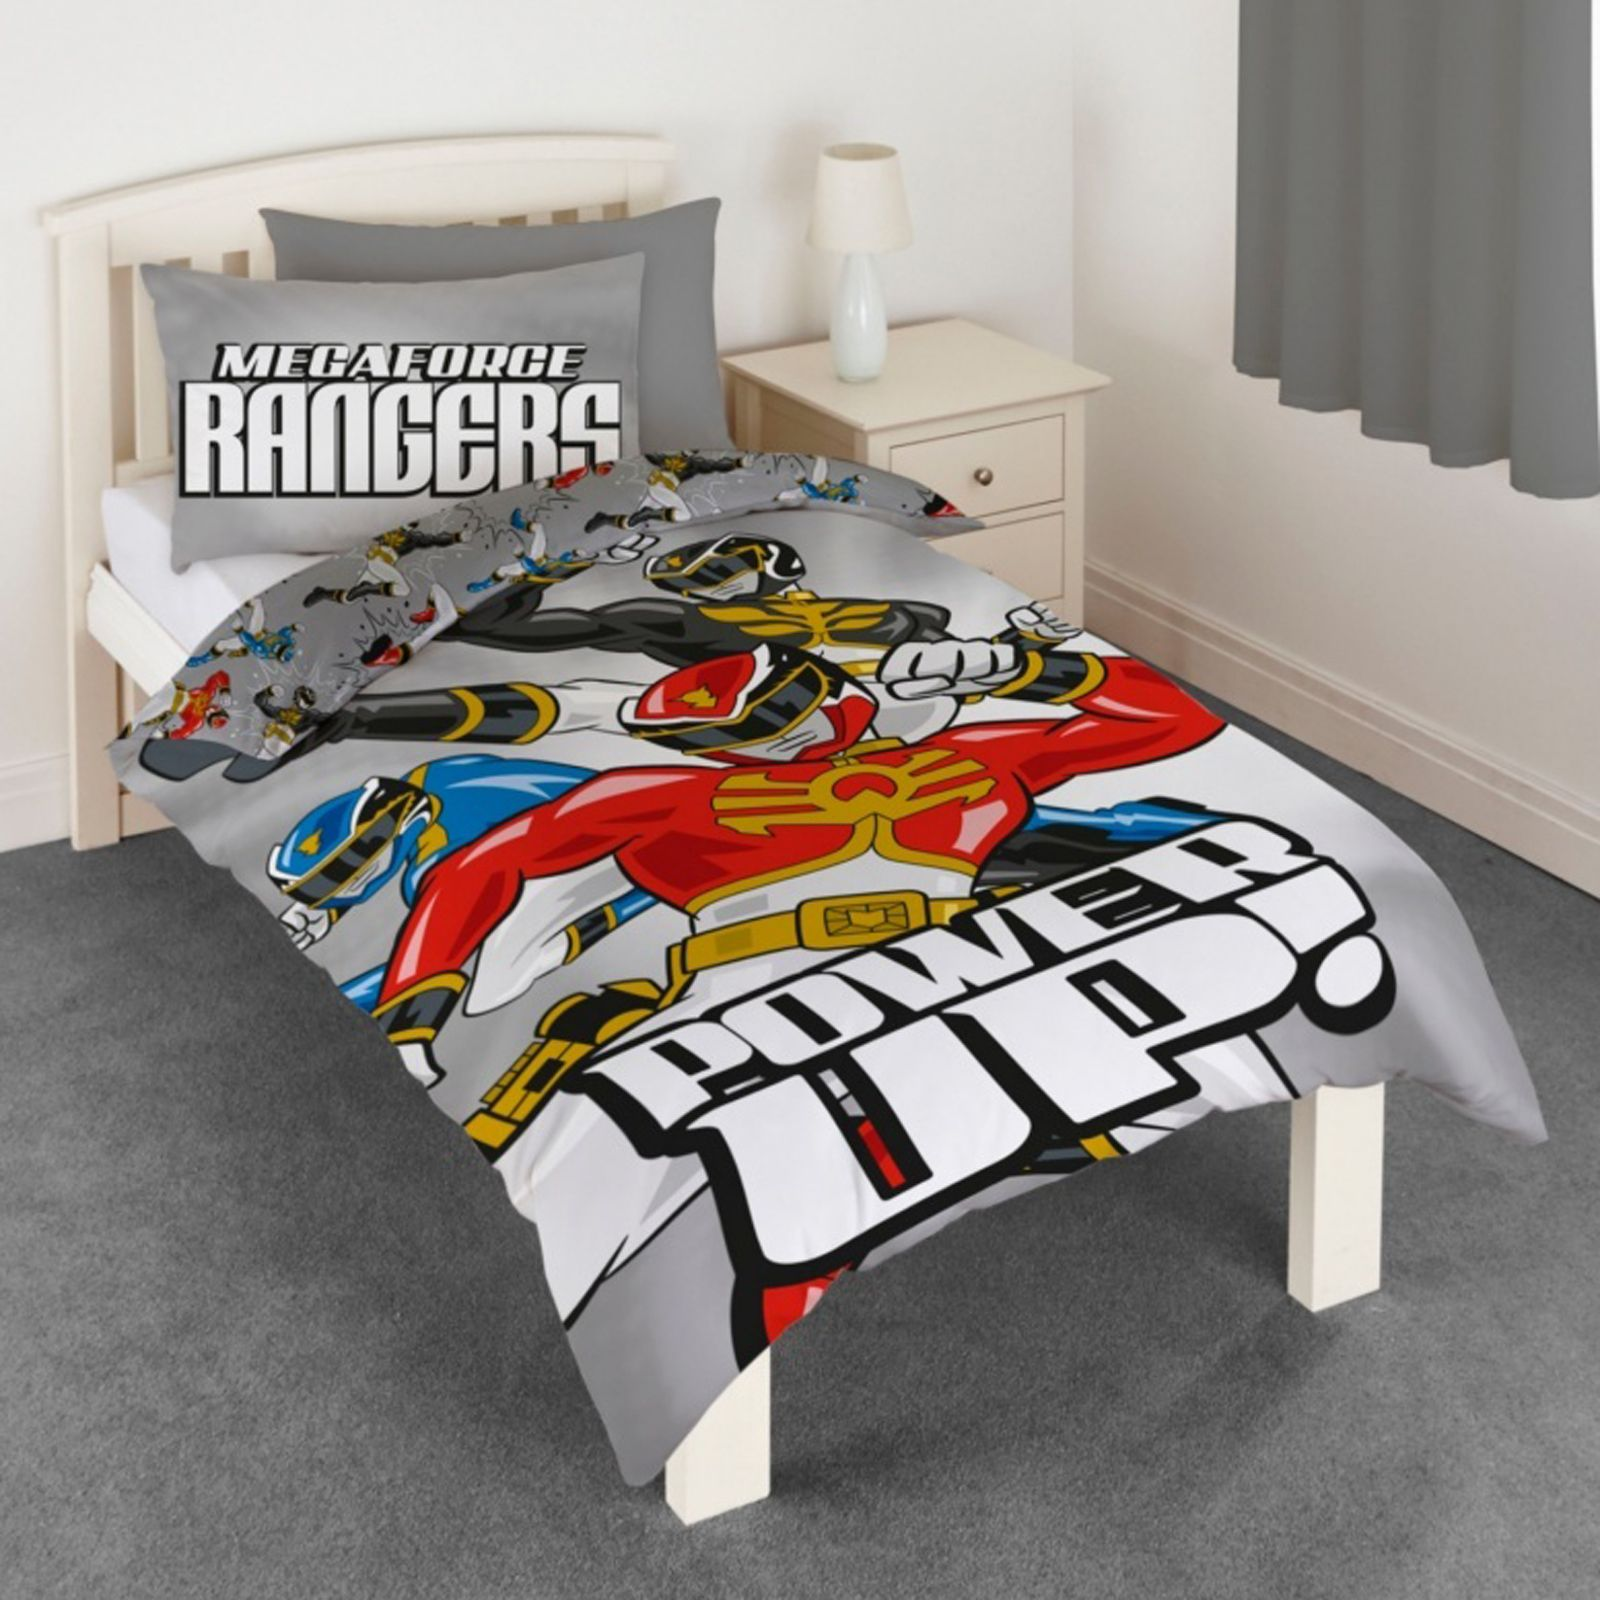 power rangers megaforce housse couette lot gar ons parure de lit ebay. Black Bedroom Furniture Sets. Home Design Ideas